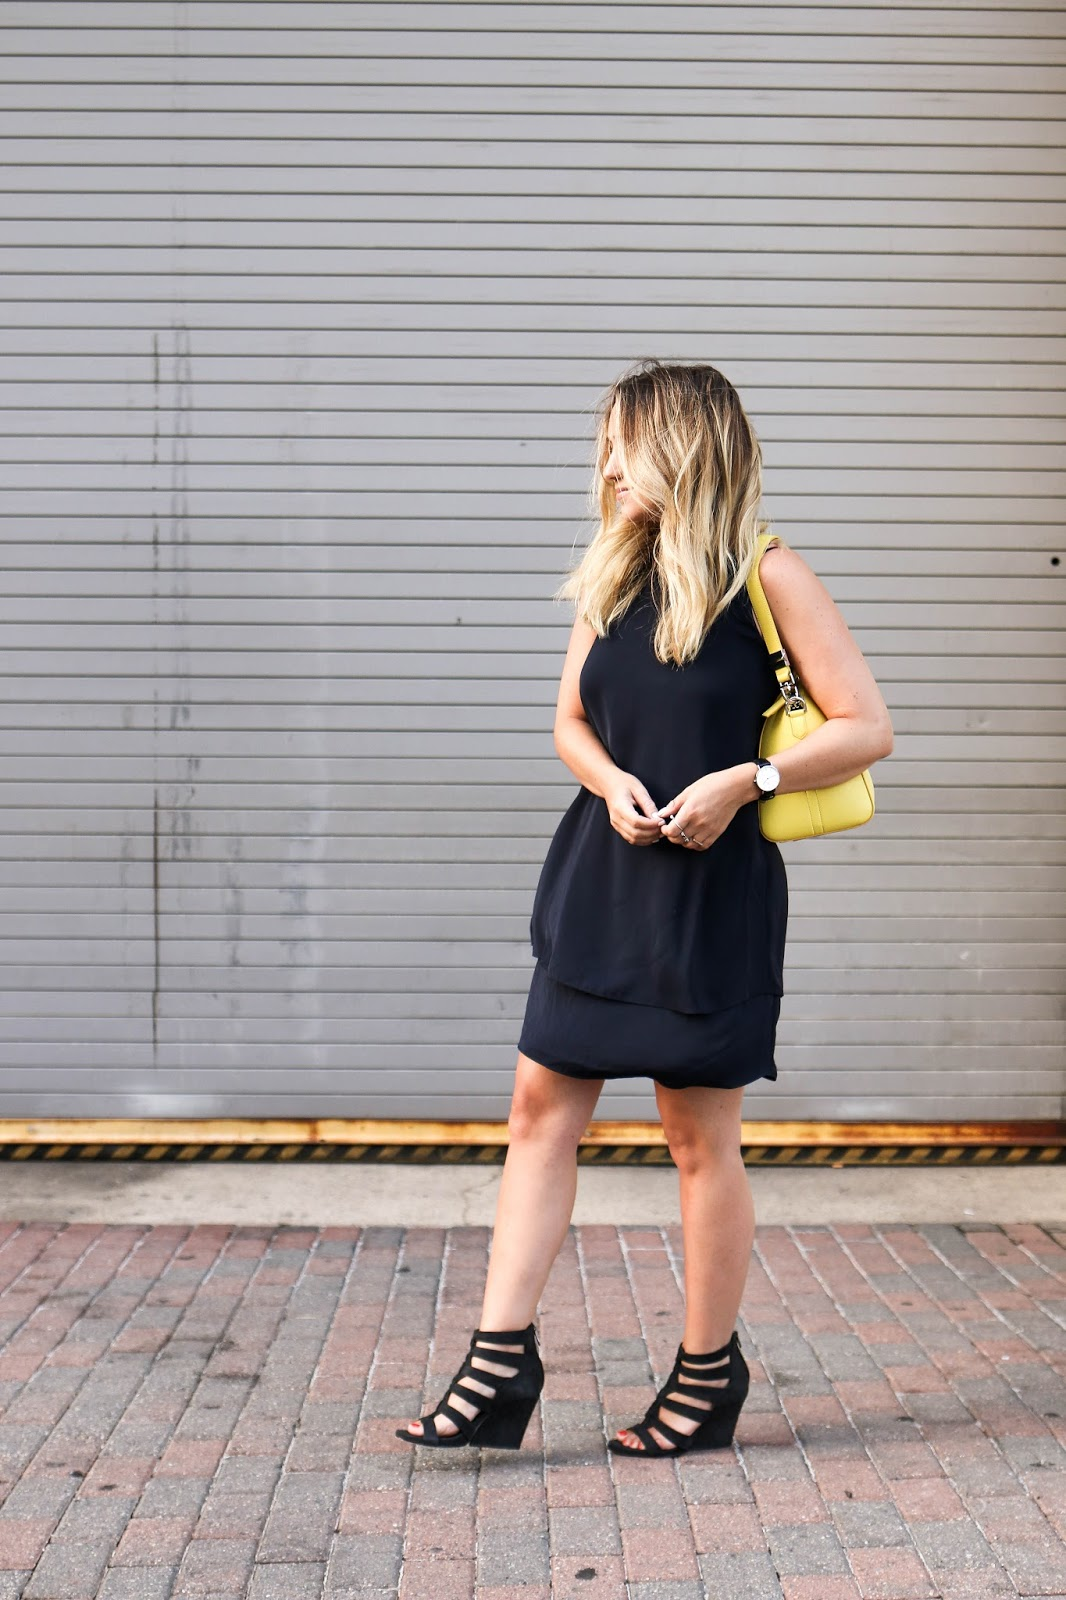 designer, tjmaxx, givenchy, yellow, antigona, bag, sale, discount, dress, sigerson, heels, strappy, gladiator, dc, blog, outfit, style